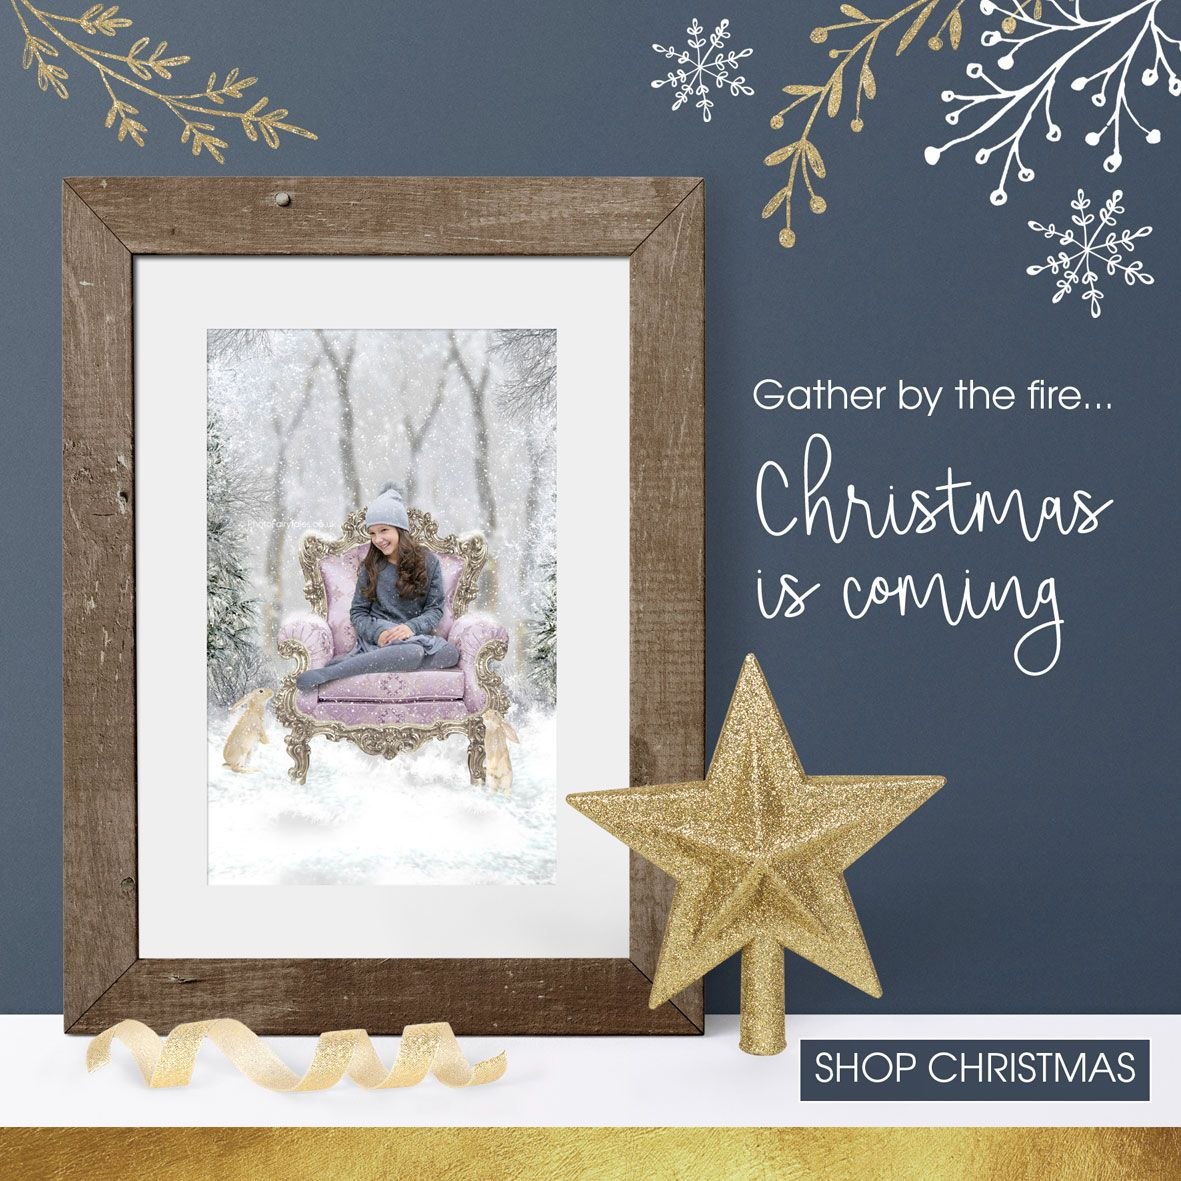 Personalised Christmas Gifts from PhotoFairytales   Unique, handmade gifts and keepsakes